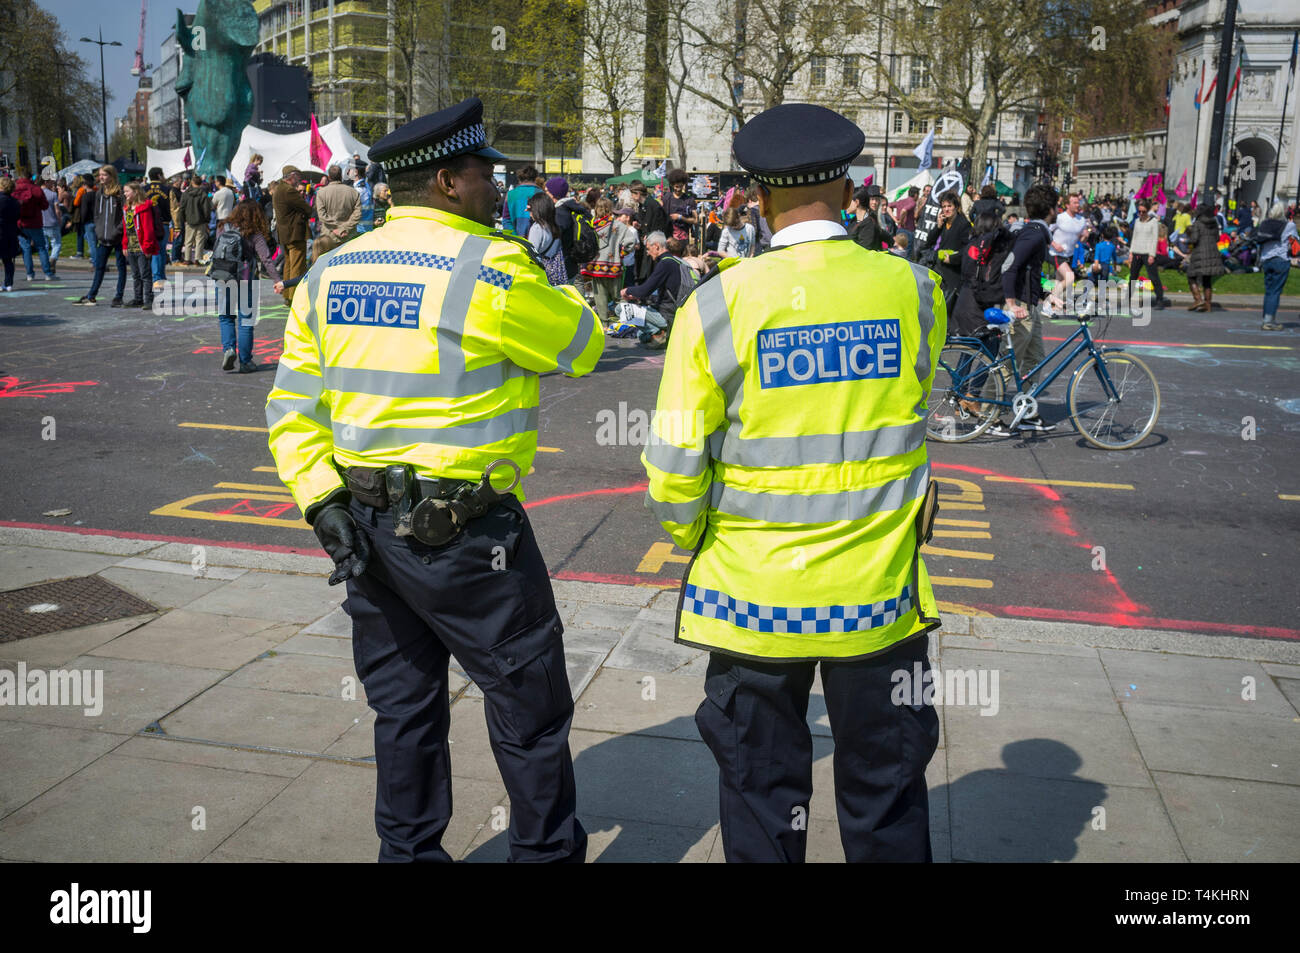 Two Metropolitan Policemen watch the Extinction Rebellion demonstration at Marble Arch - Stock Image